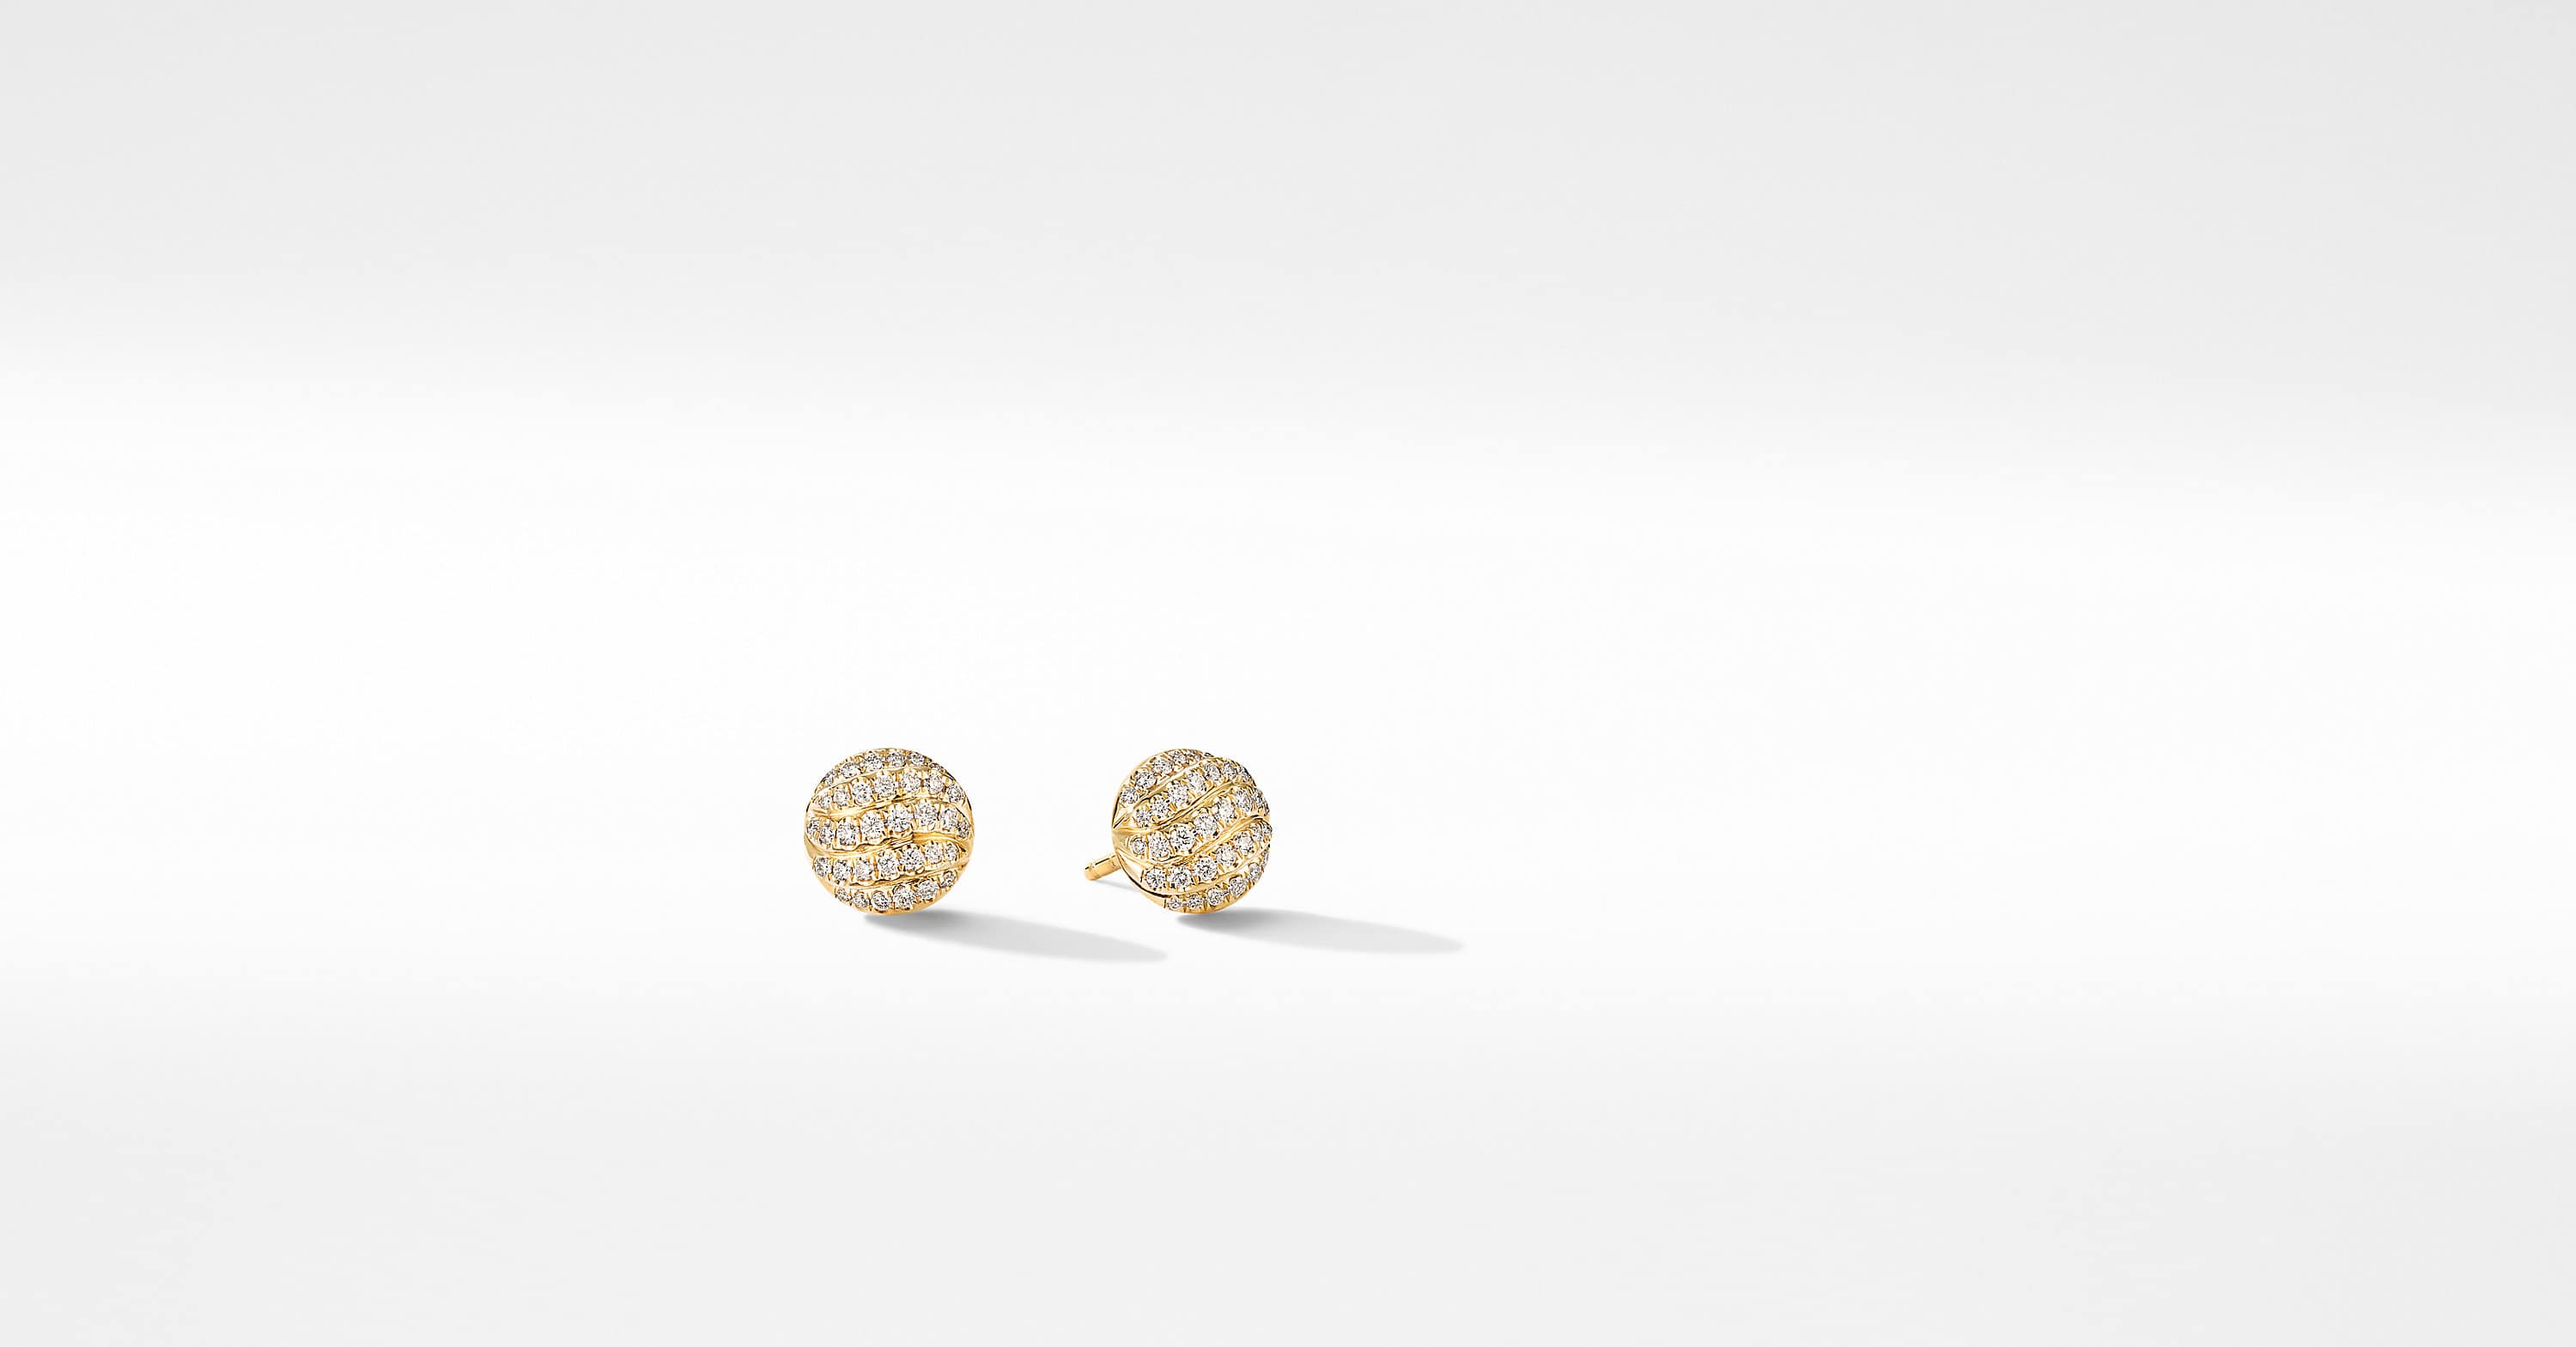 Mini Cable Stud Earrings in 18K Yellow Gold with Diamonds